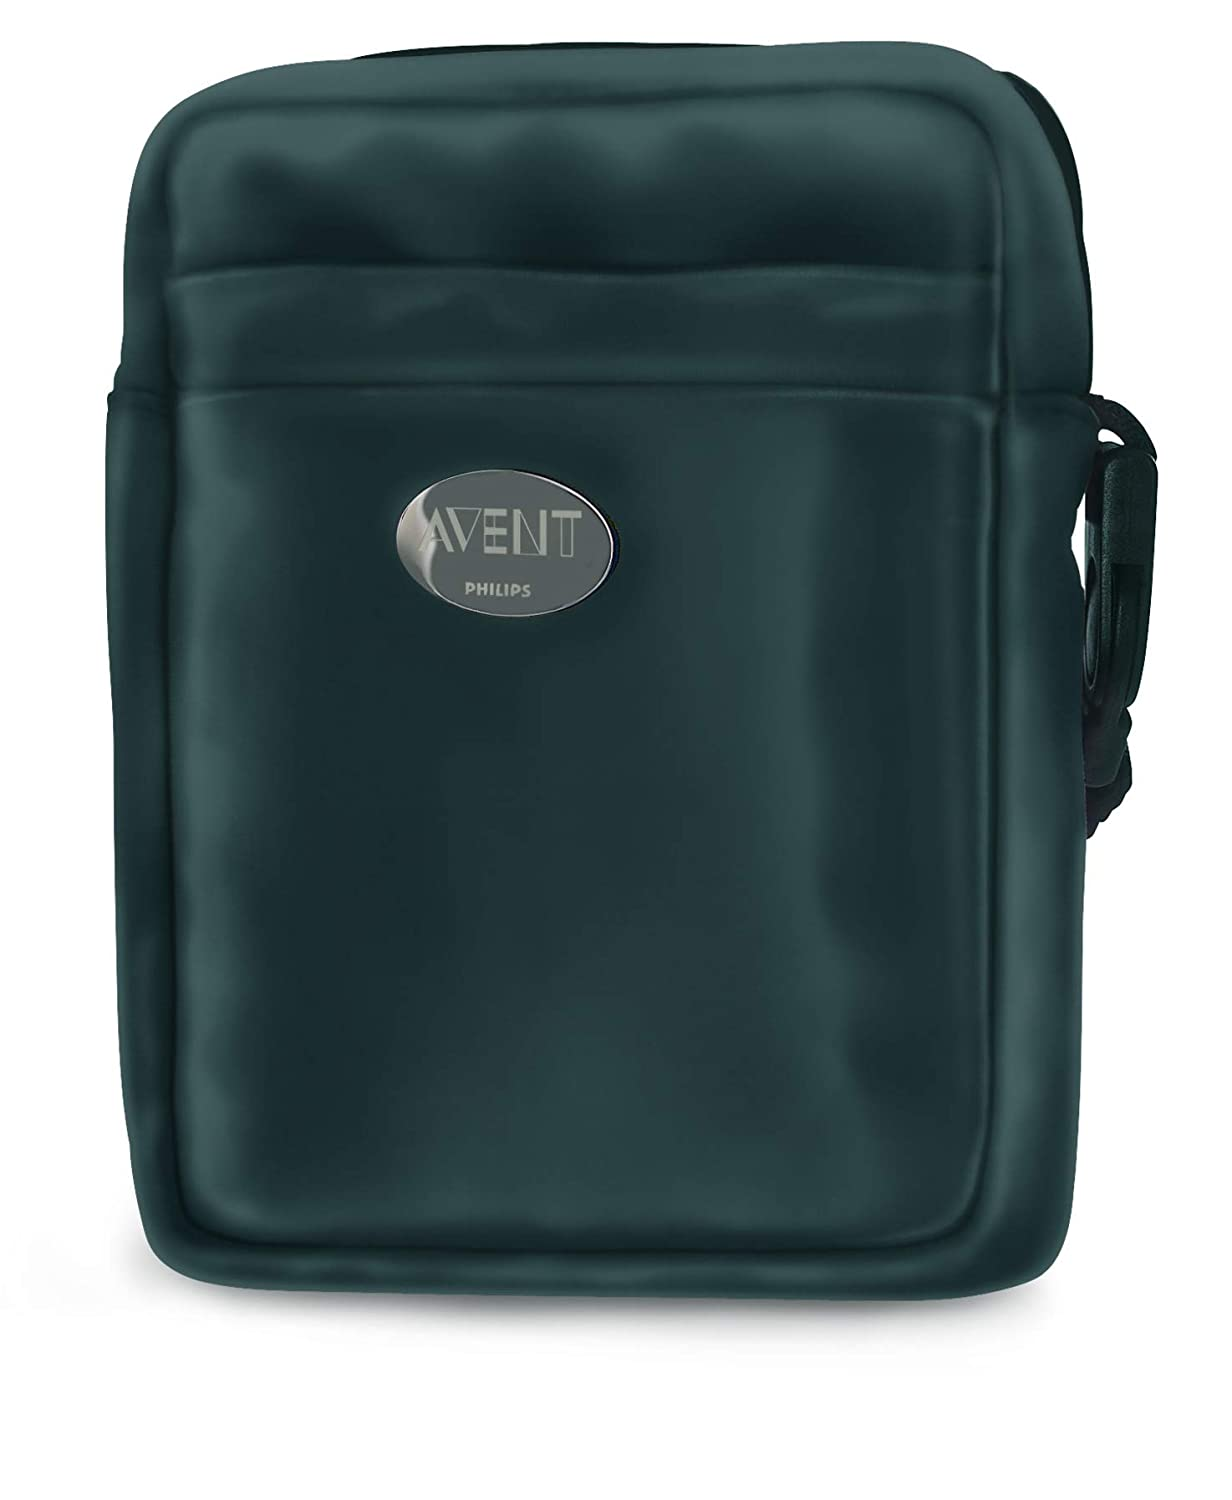 Philips Avent Thermabag (Black) SCD150/60